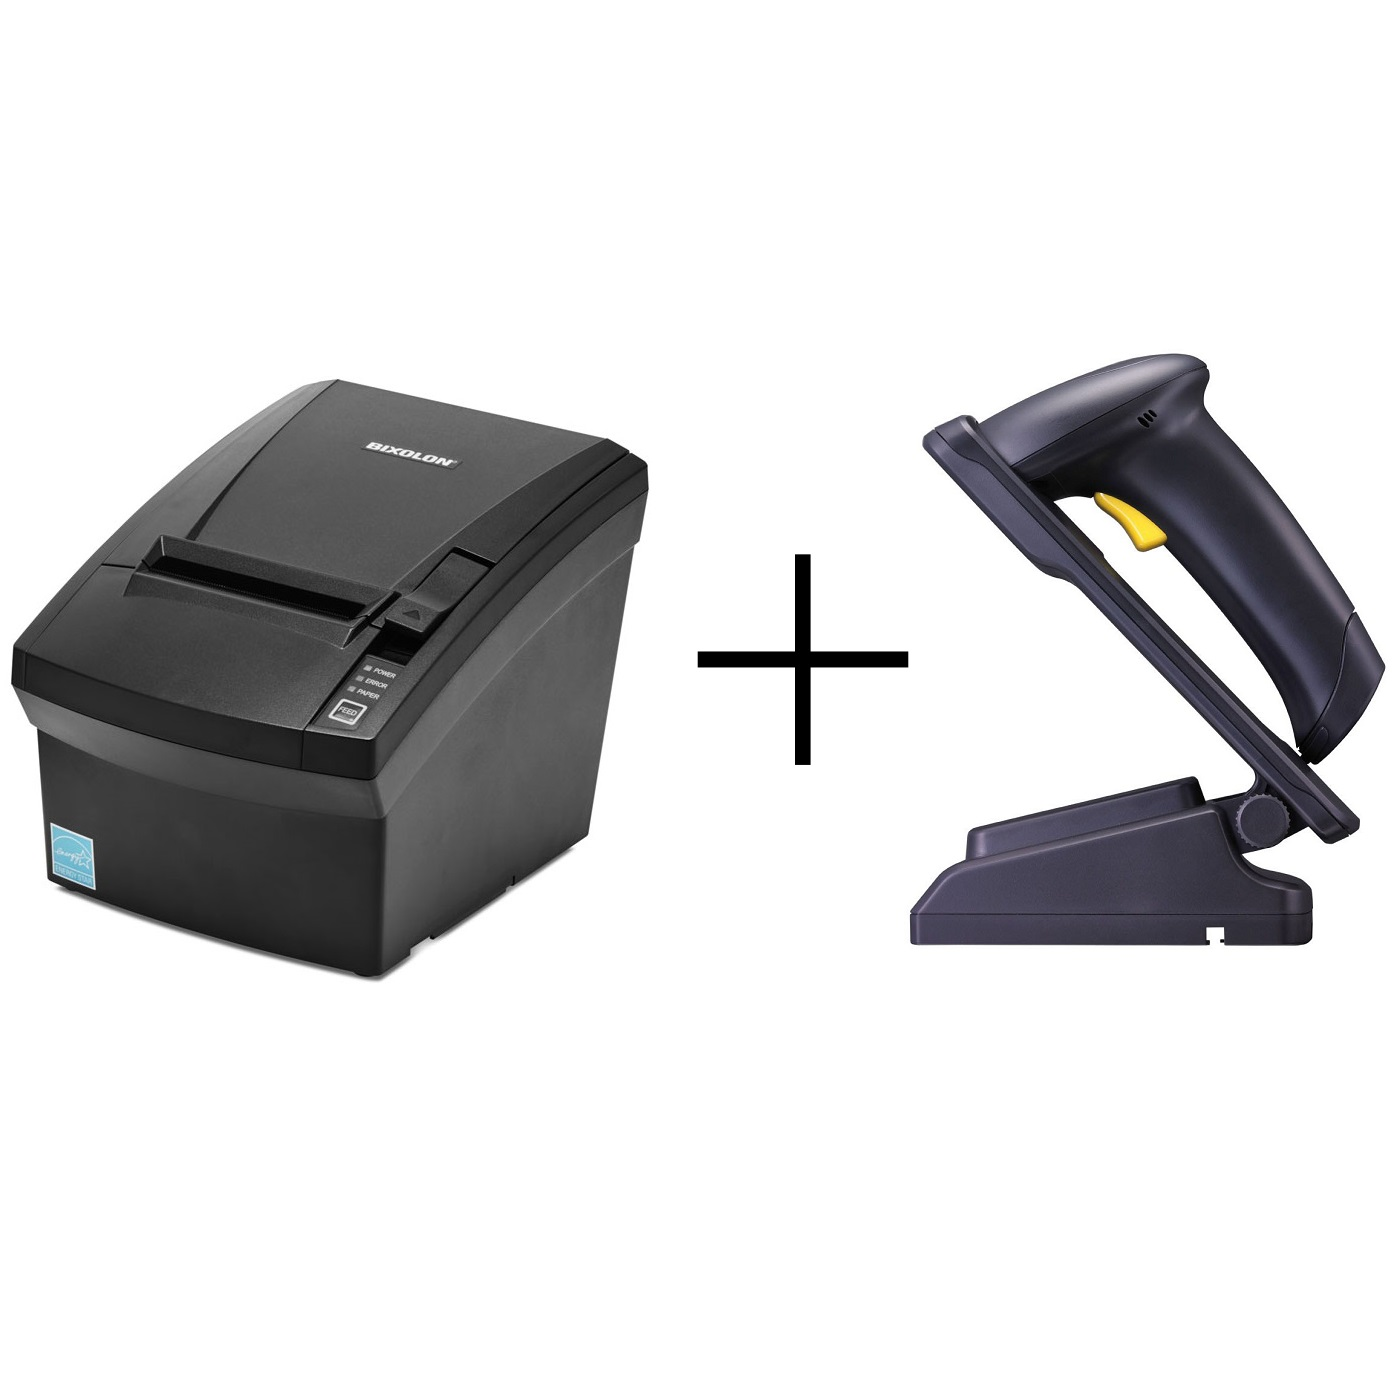 View Bixolon SRP330II + Cipherlab 1500 Scanner Bundle